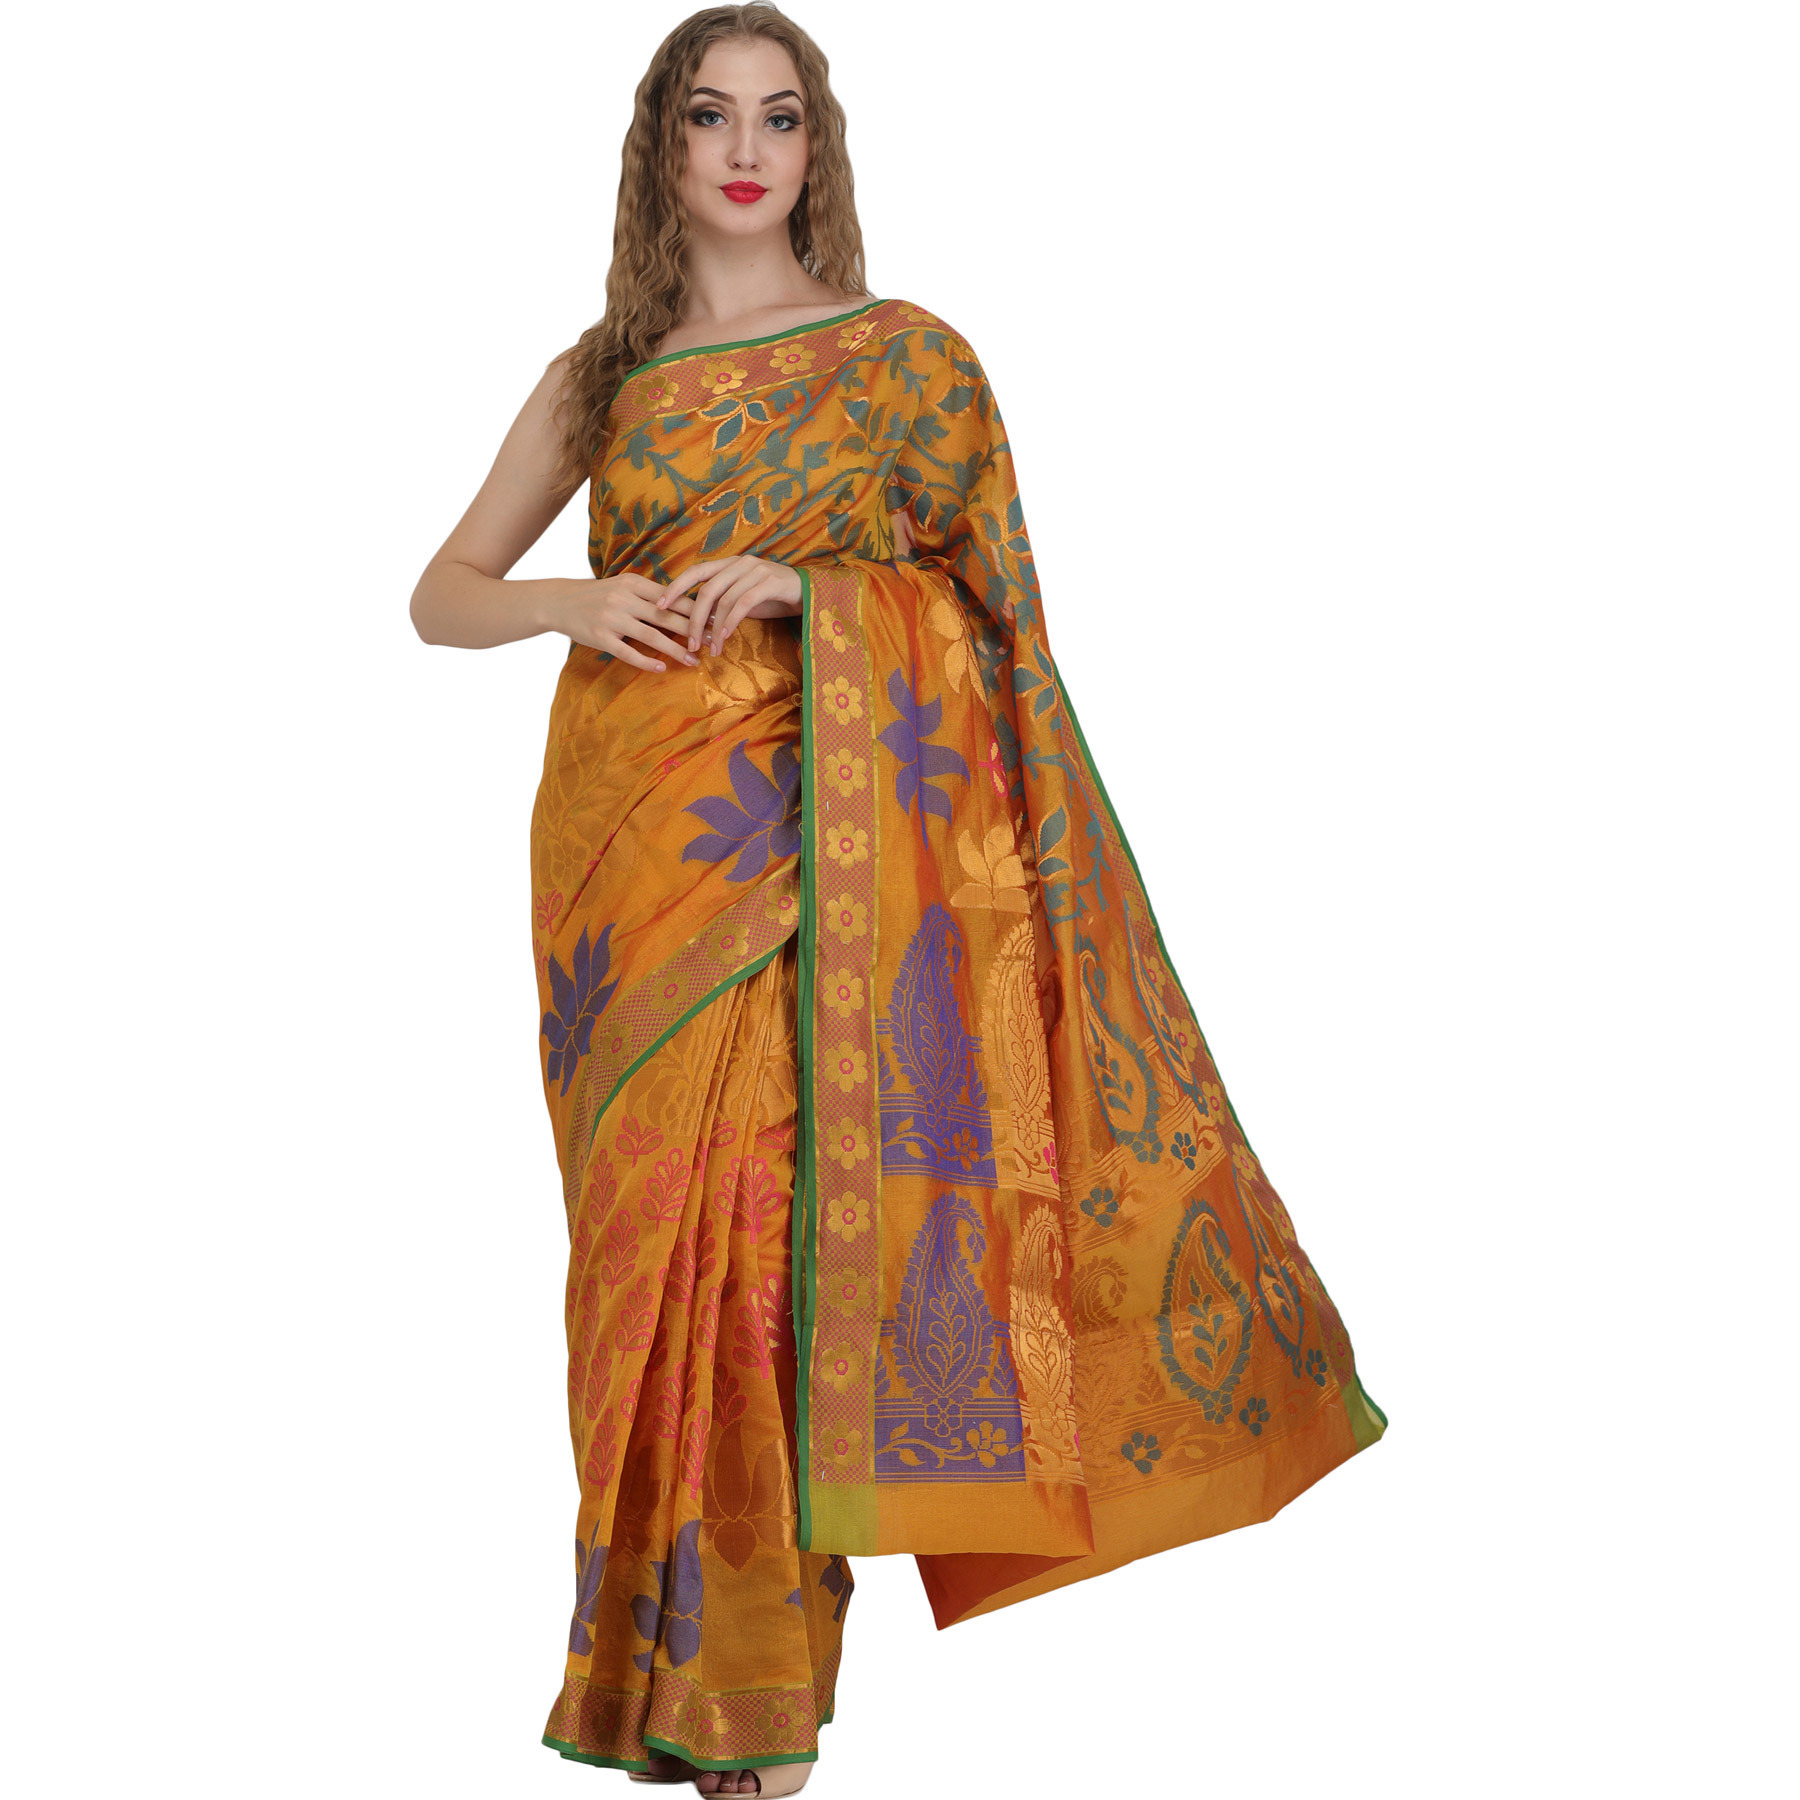 Golden-Nugget Banarasi Sari with Woven Lotuses and Paisleys